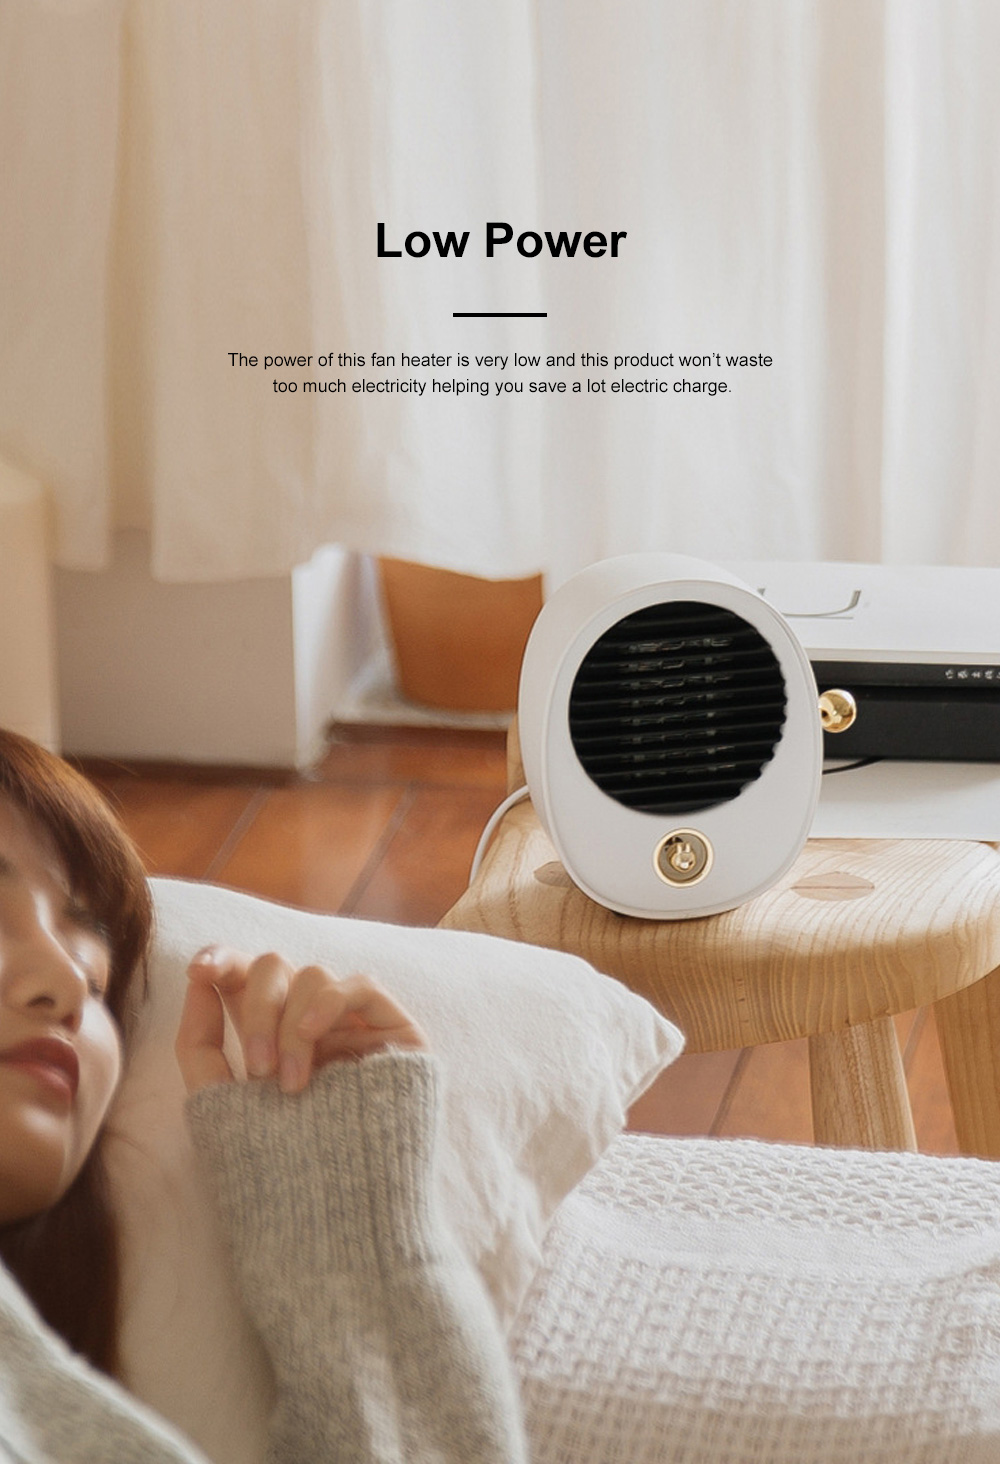 Portable Quick Heating Dormitory Mini Household Mute Desktop Fan Heater Strong Hot Wind Energy Conservation 3